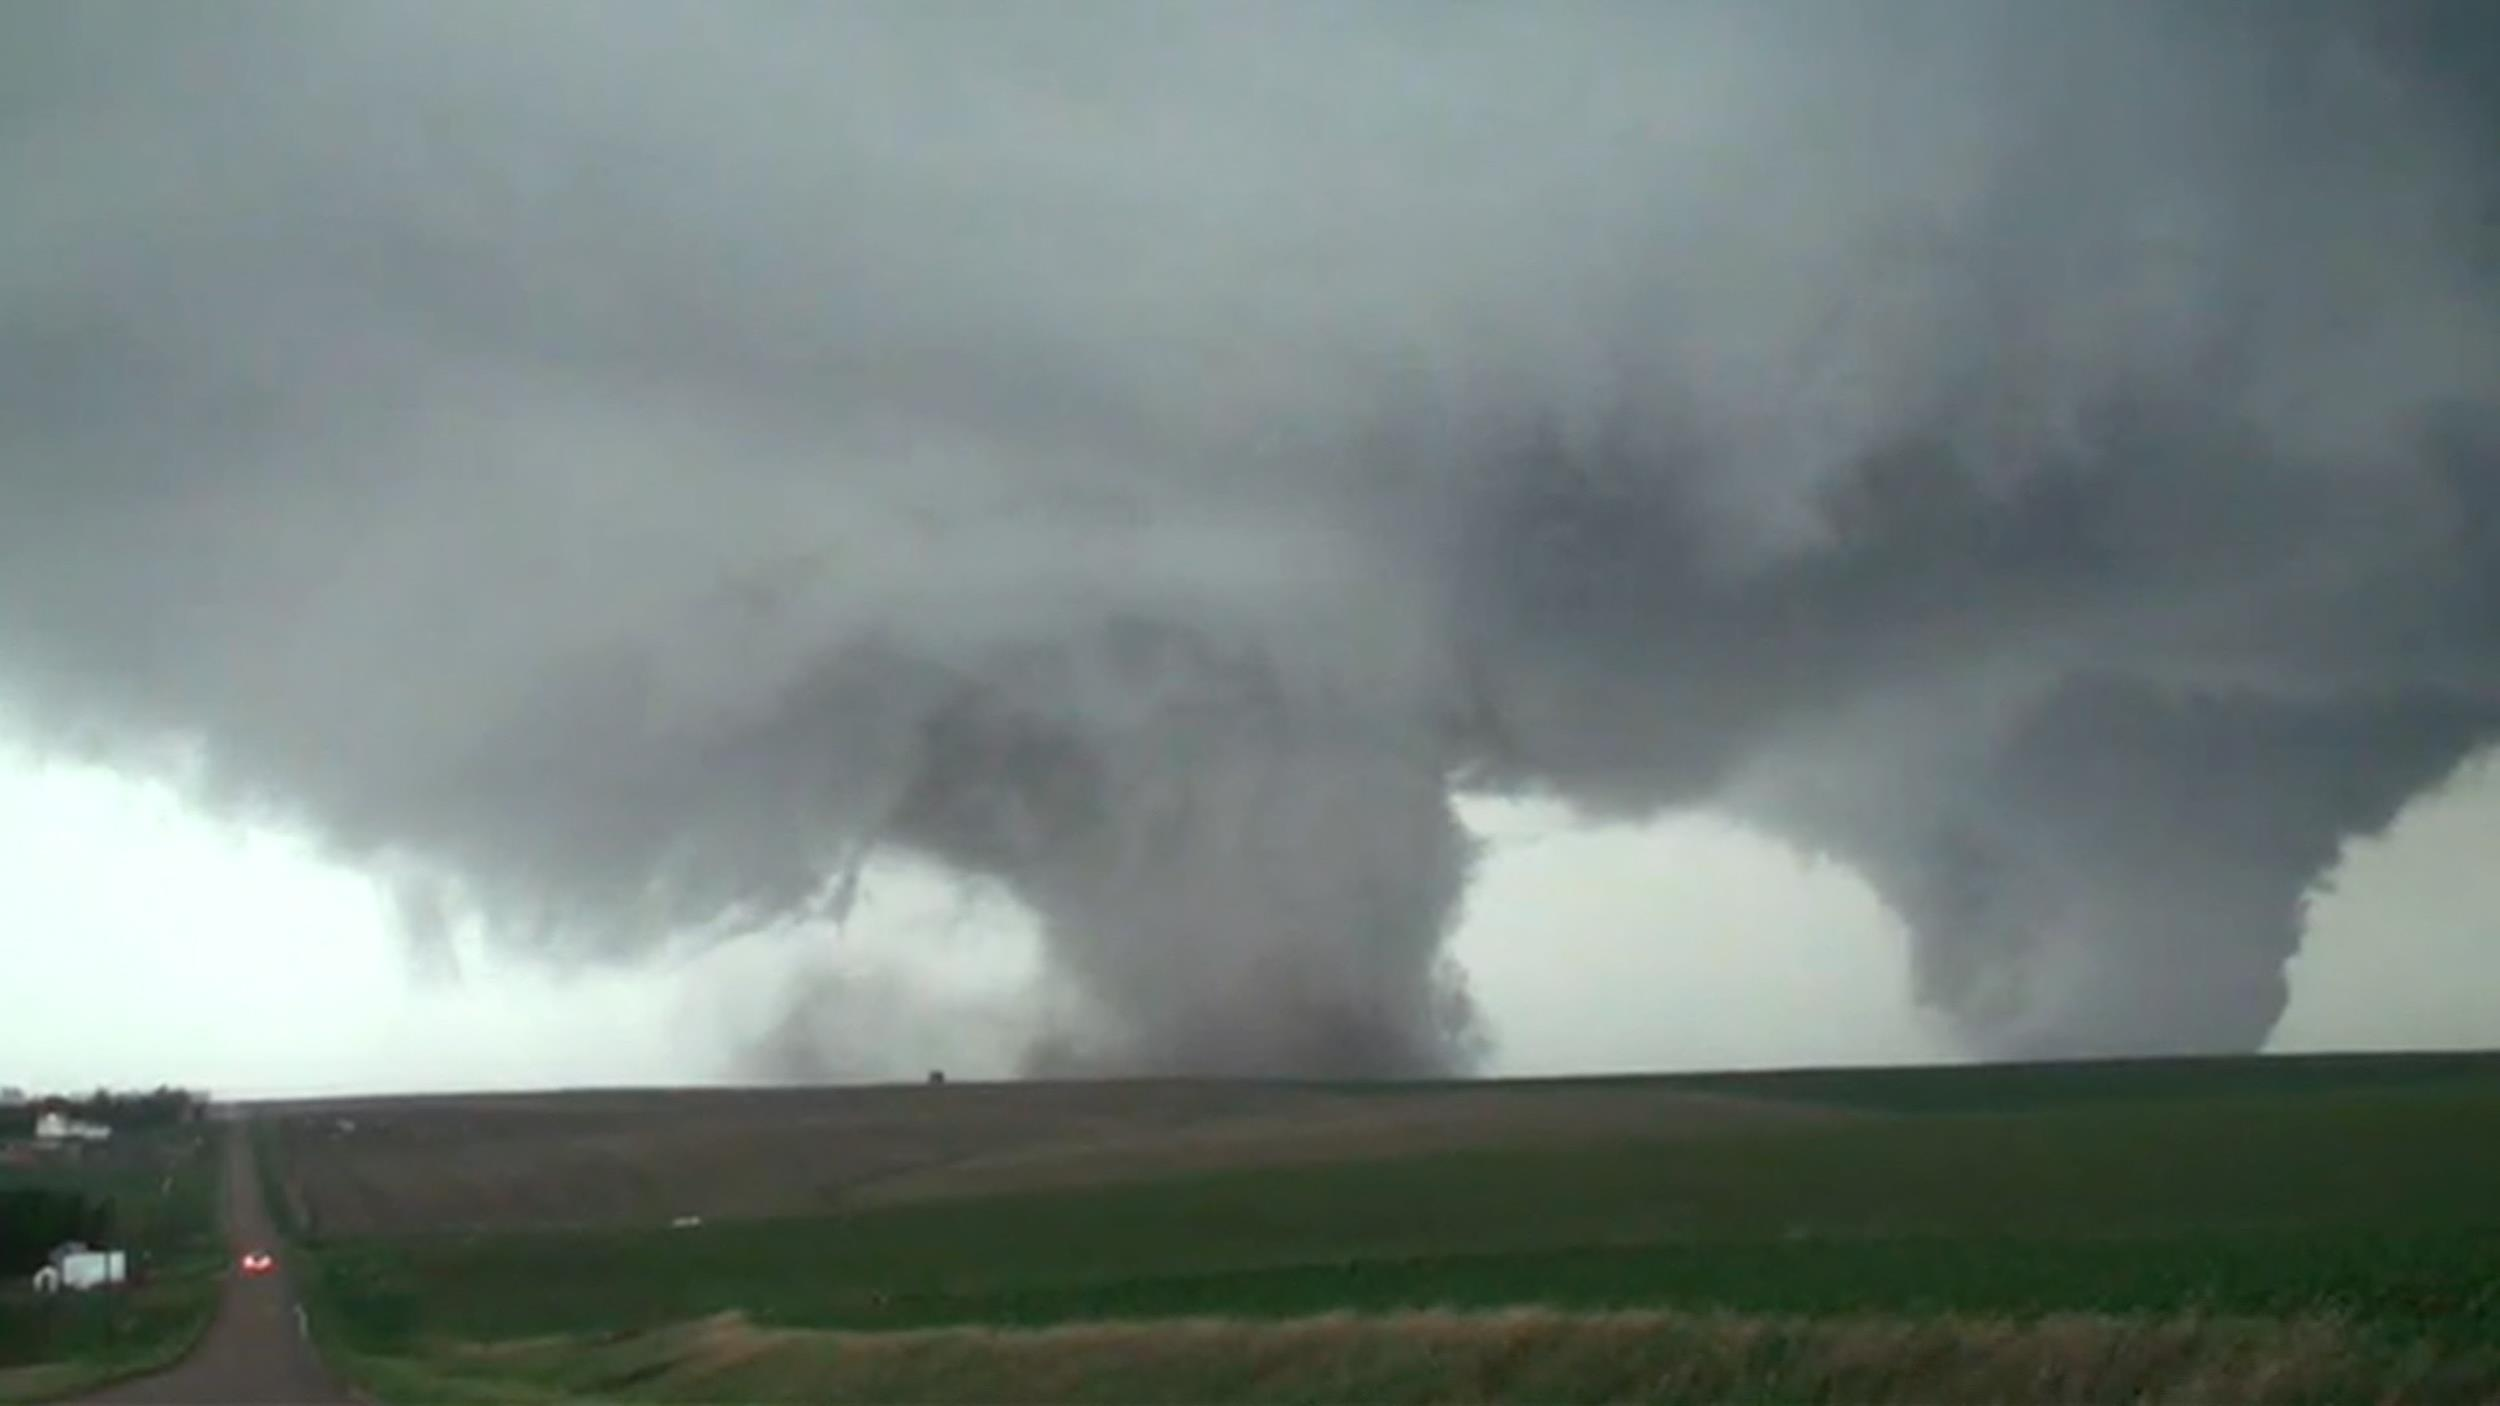 Video Two Tornadoes Touch Down At The Same Time In